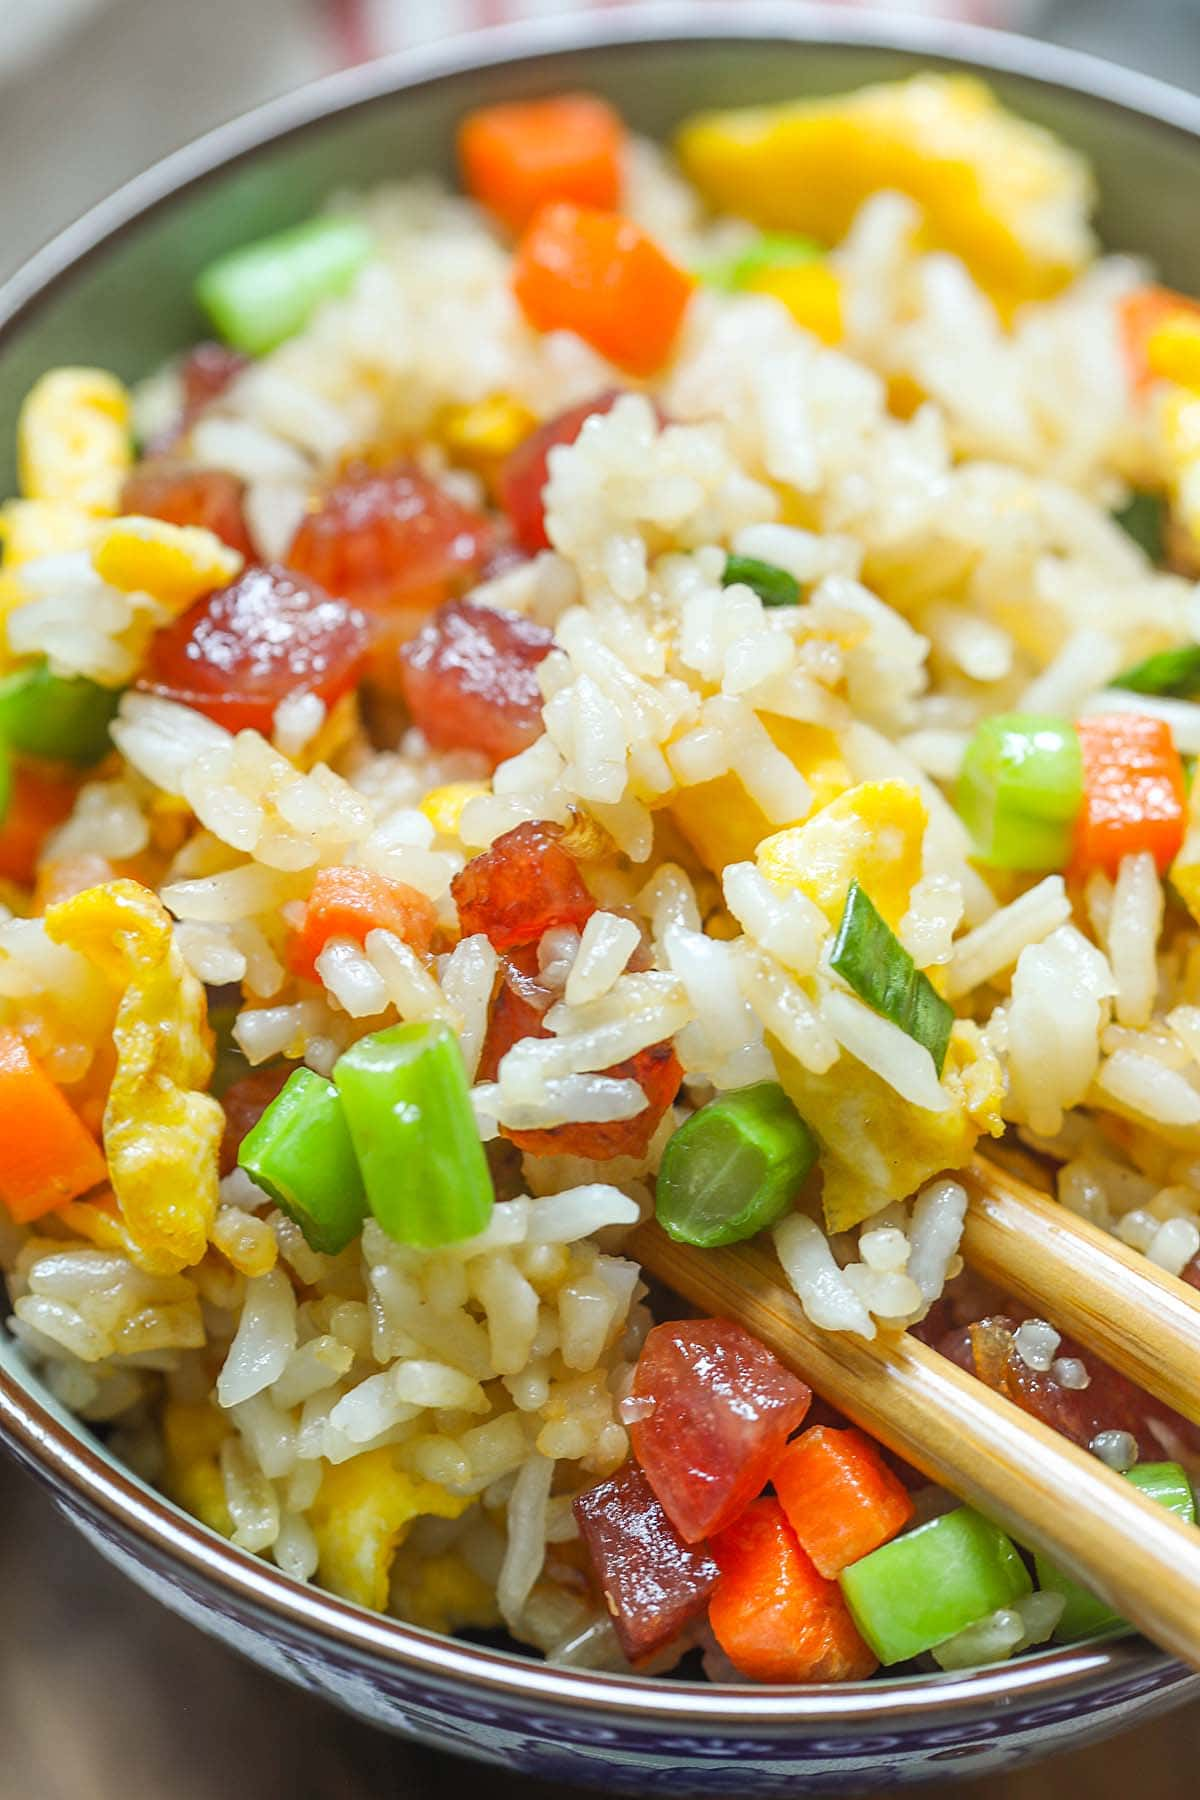 Chinese fried rice, ready to serve.